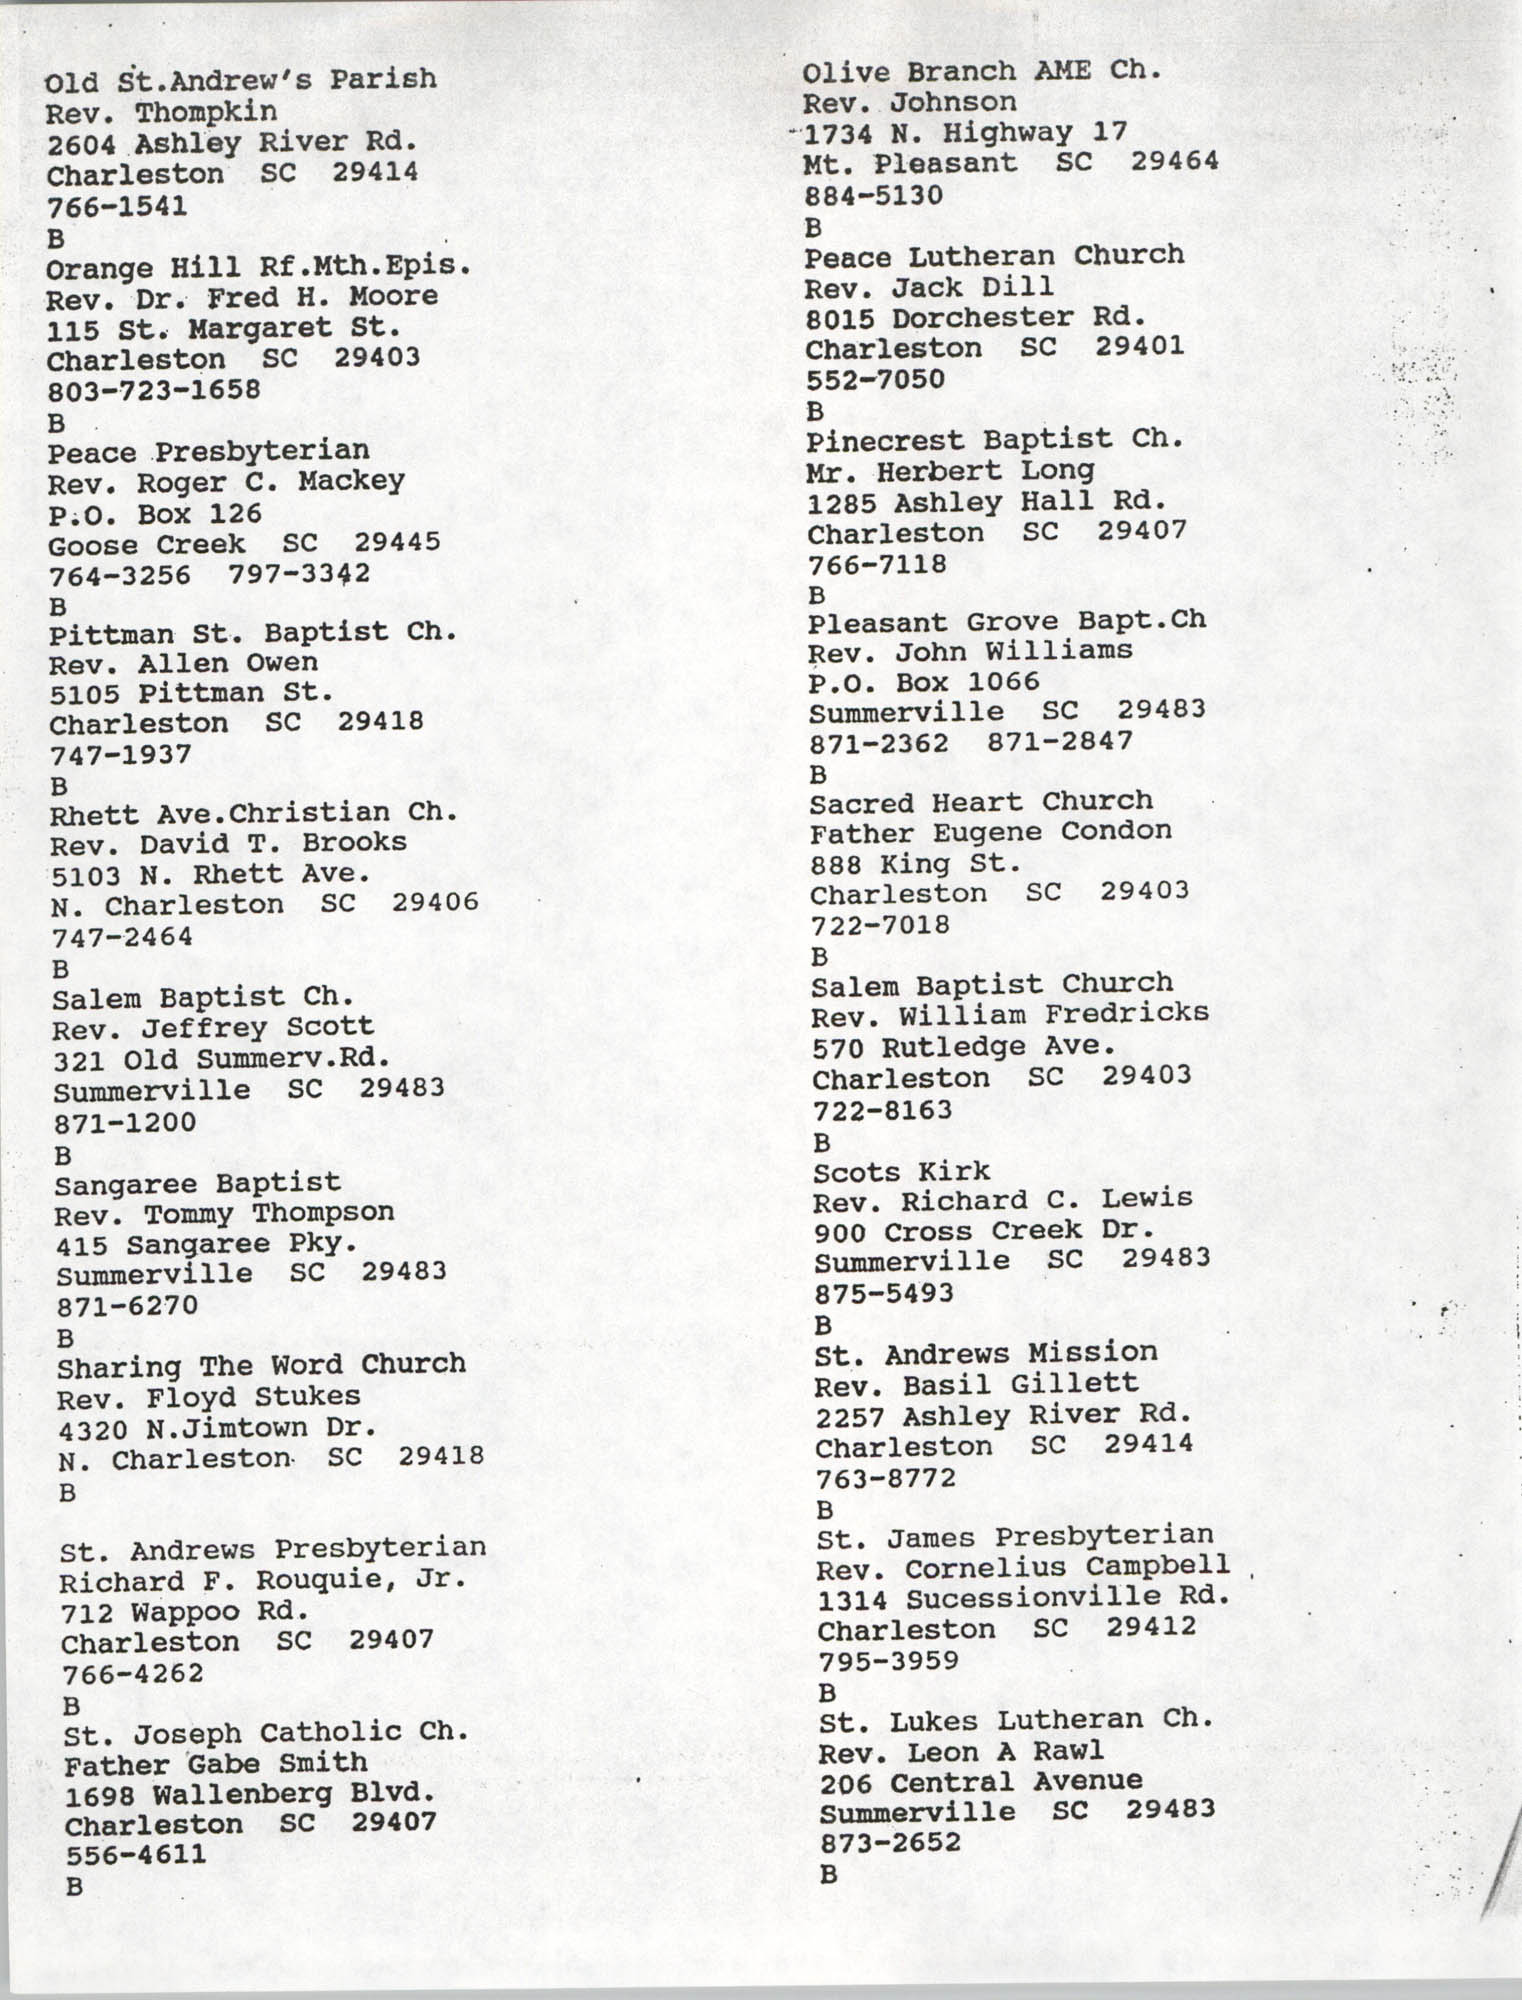 Church Contact List, Charleston Chapter of the NAACP, Page 12